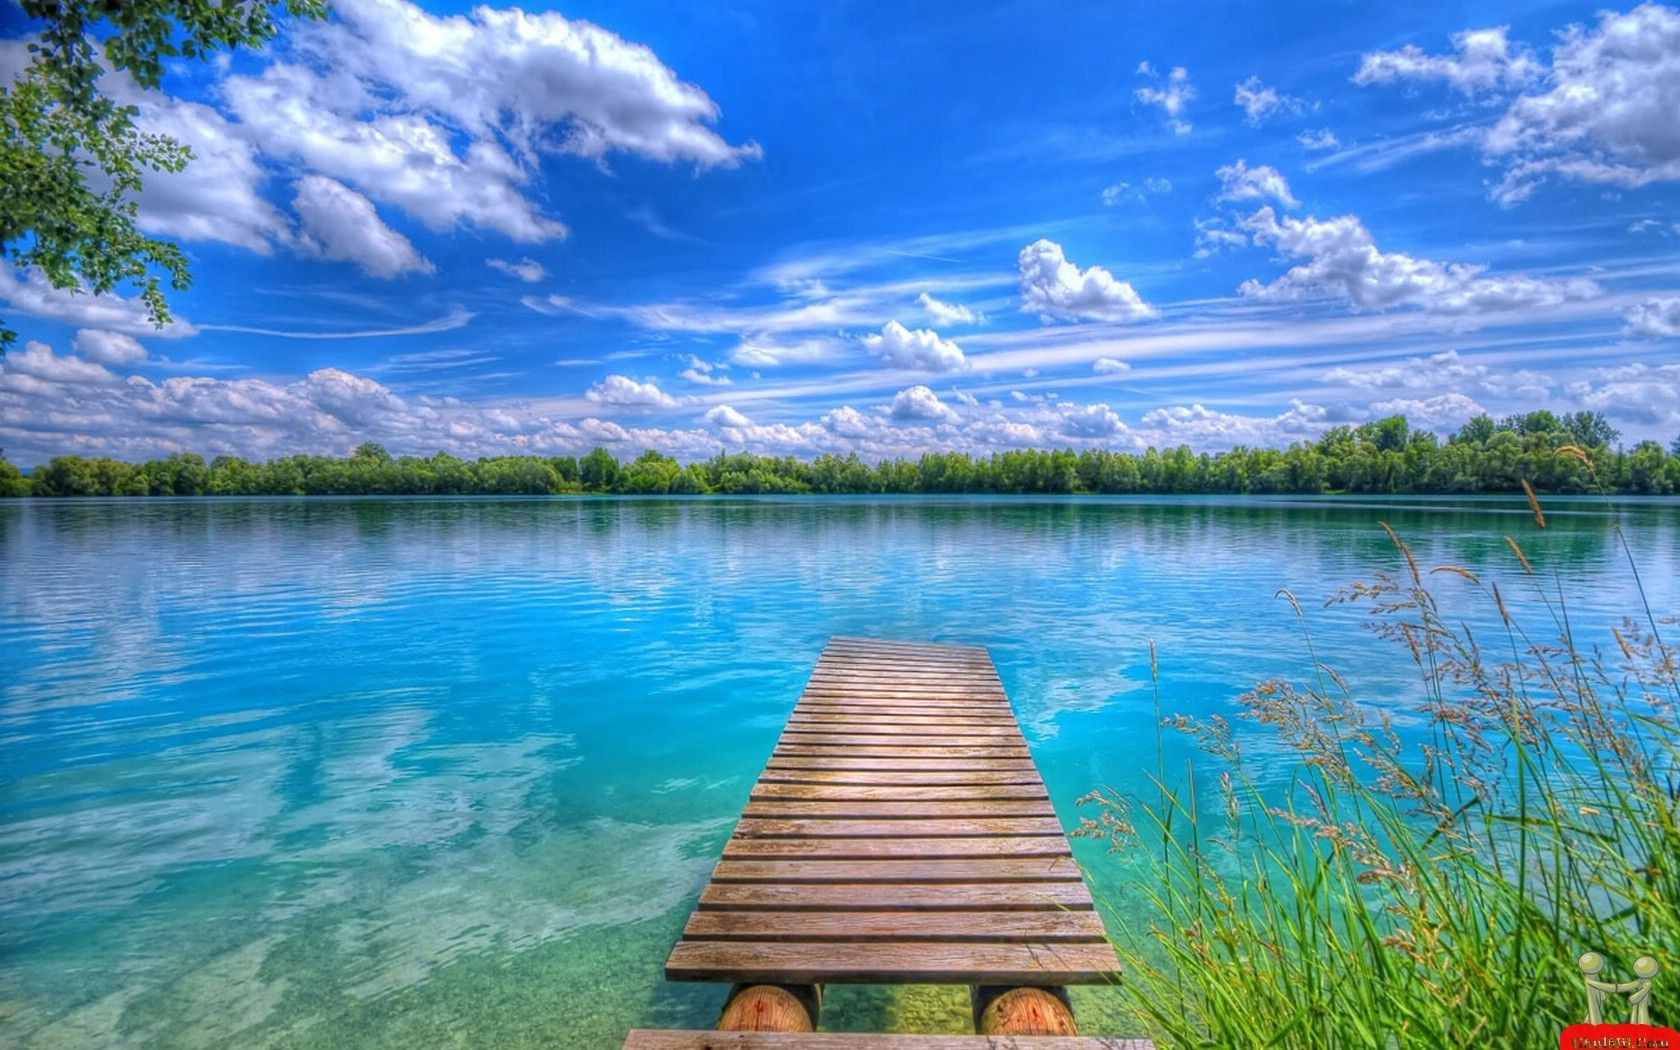 Beautiful View Hd Wallpapers Image land scaps Pinterest